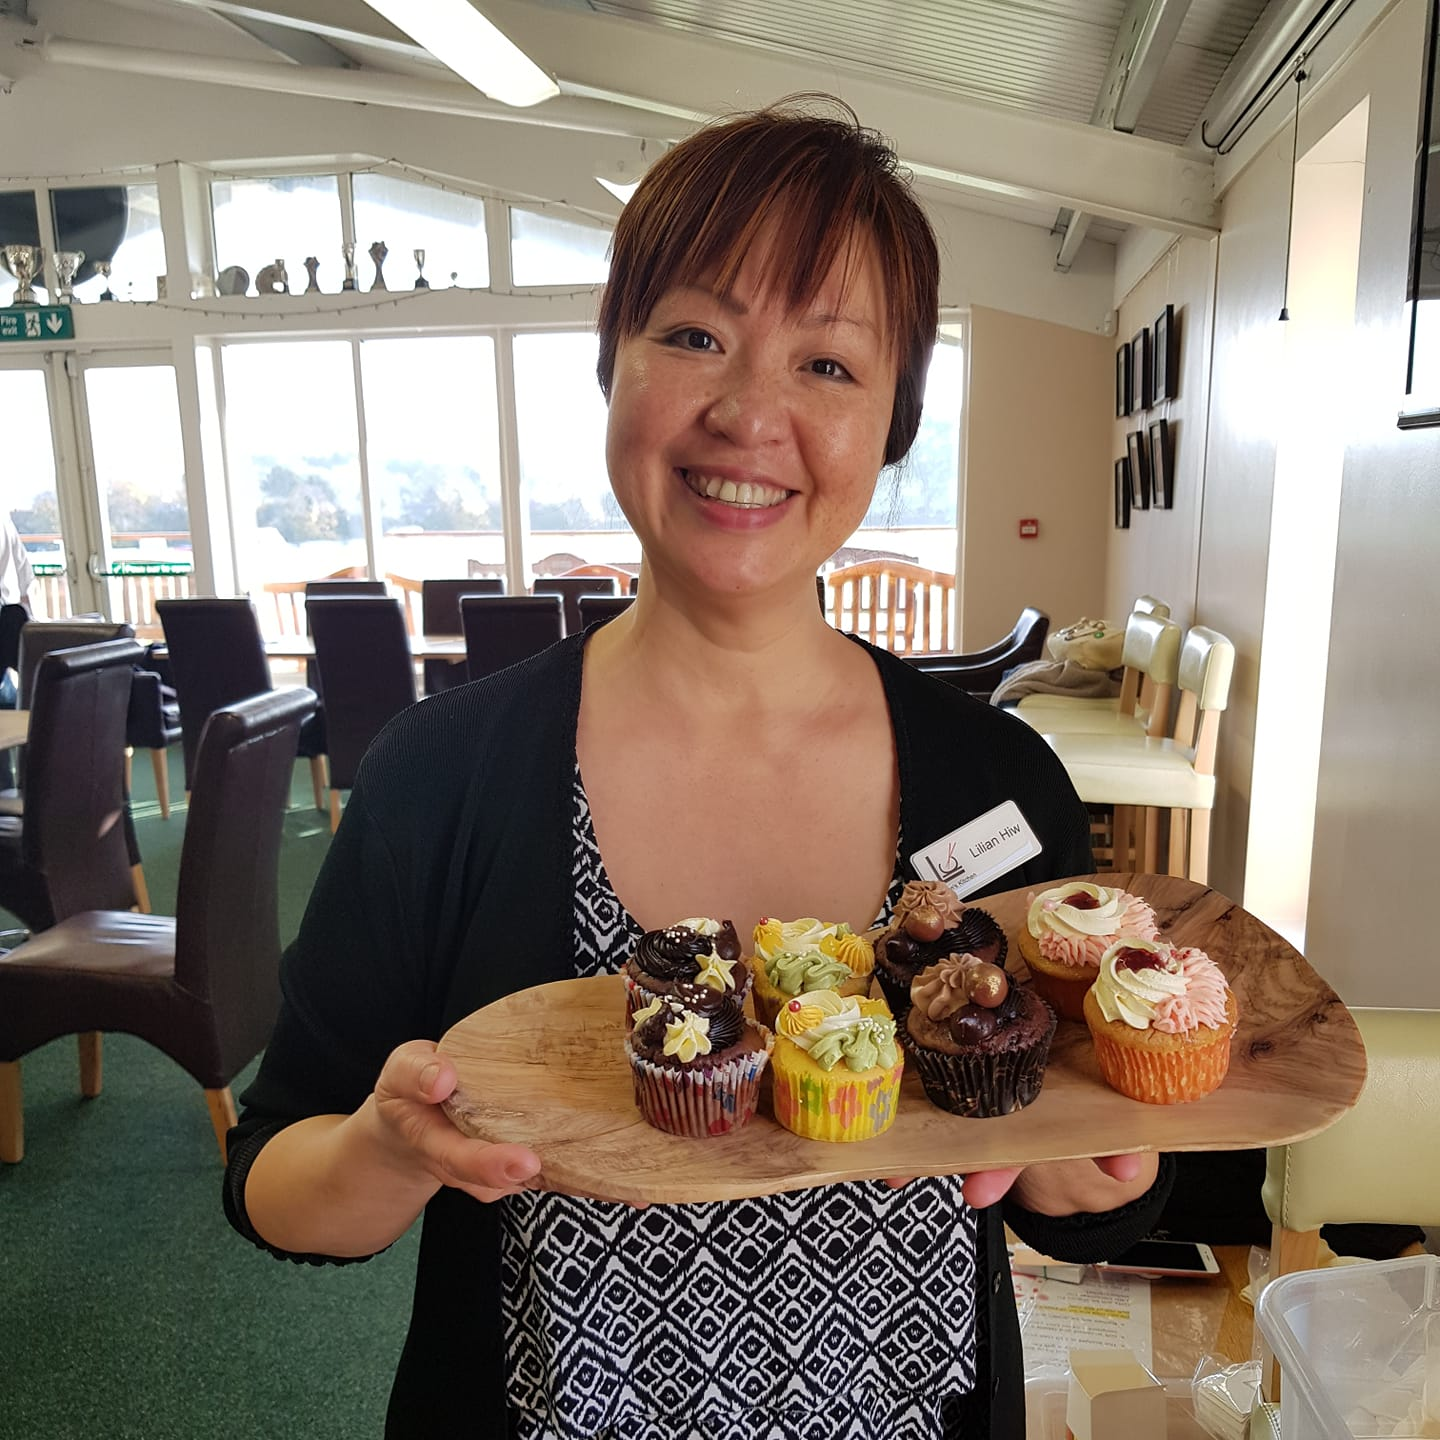 Lillian from Lillian's Kitchen with her cakes.